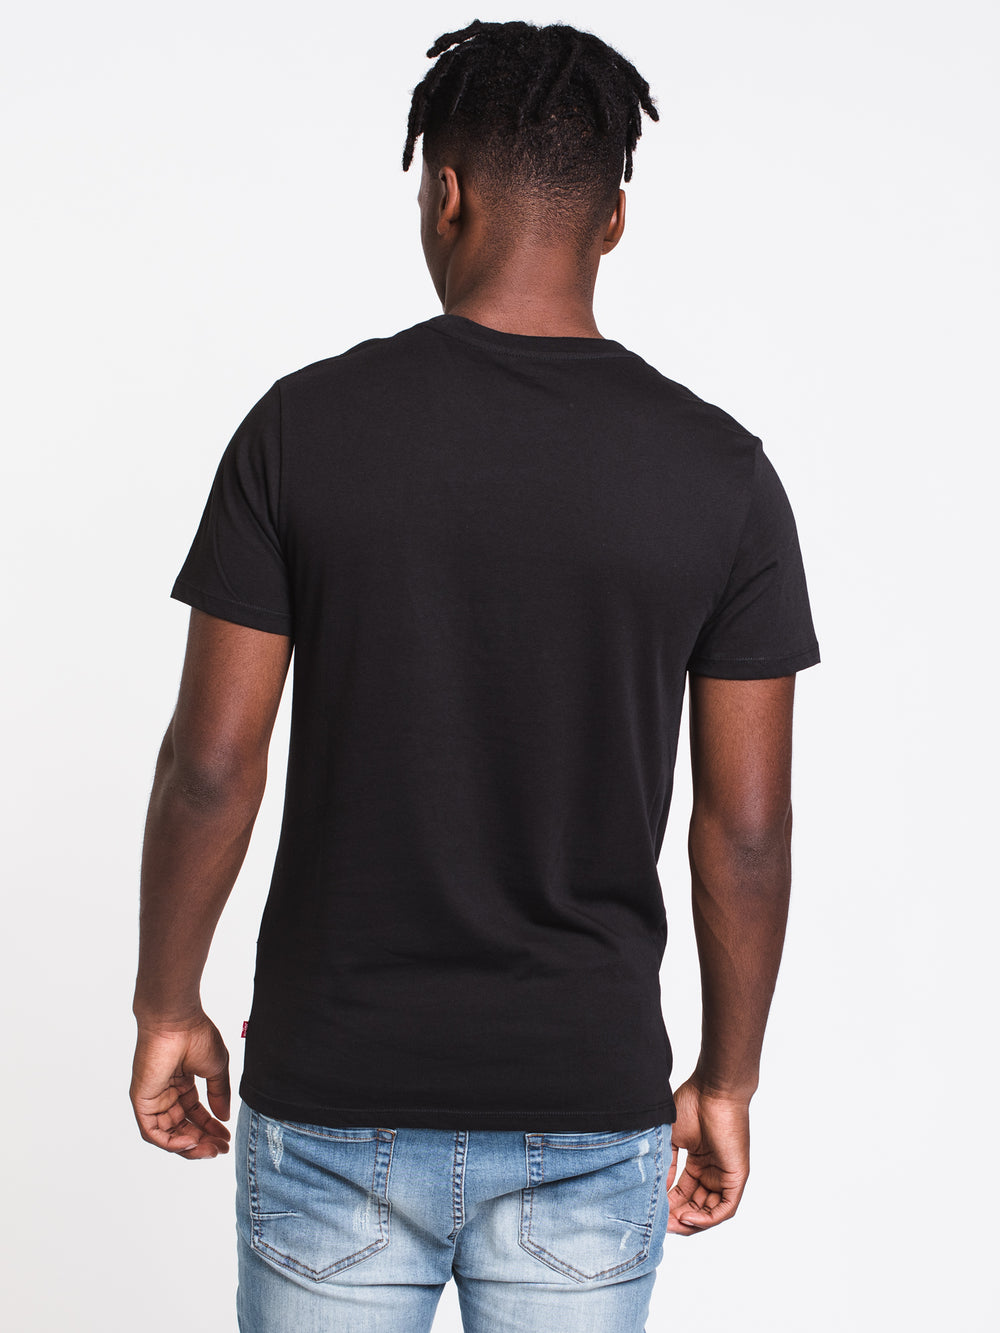 MENS GRAPHIC SET IN SHORT SLEEVE T - BLACK